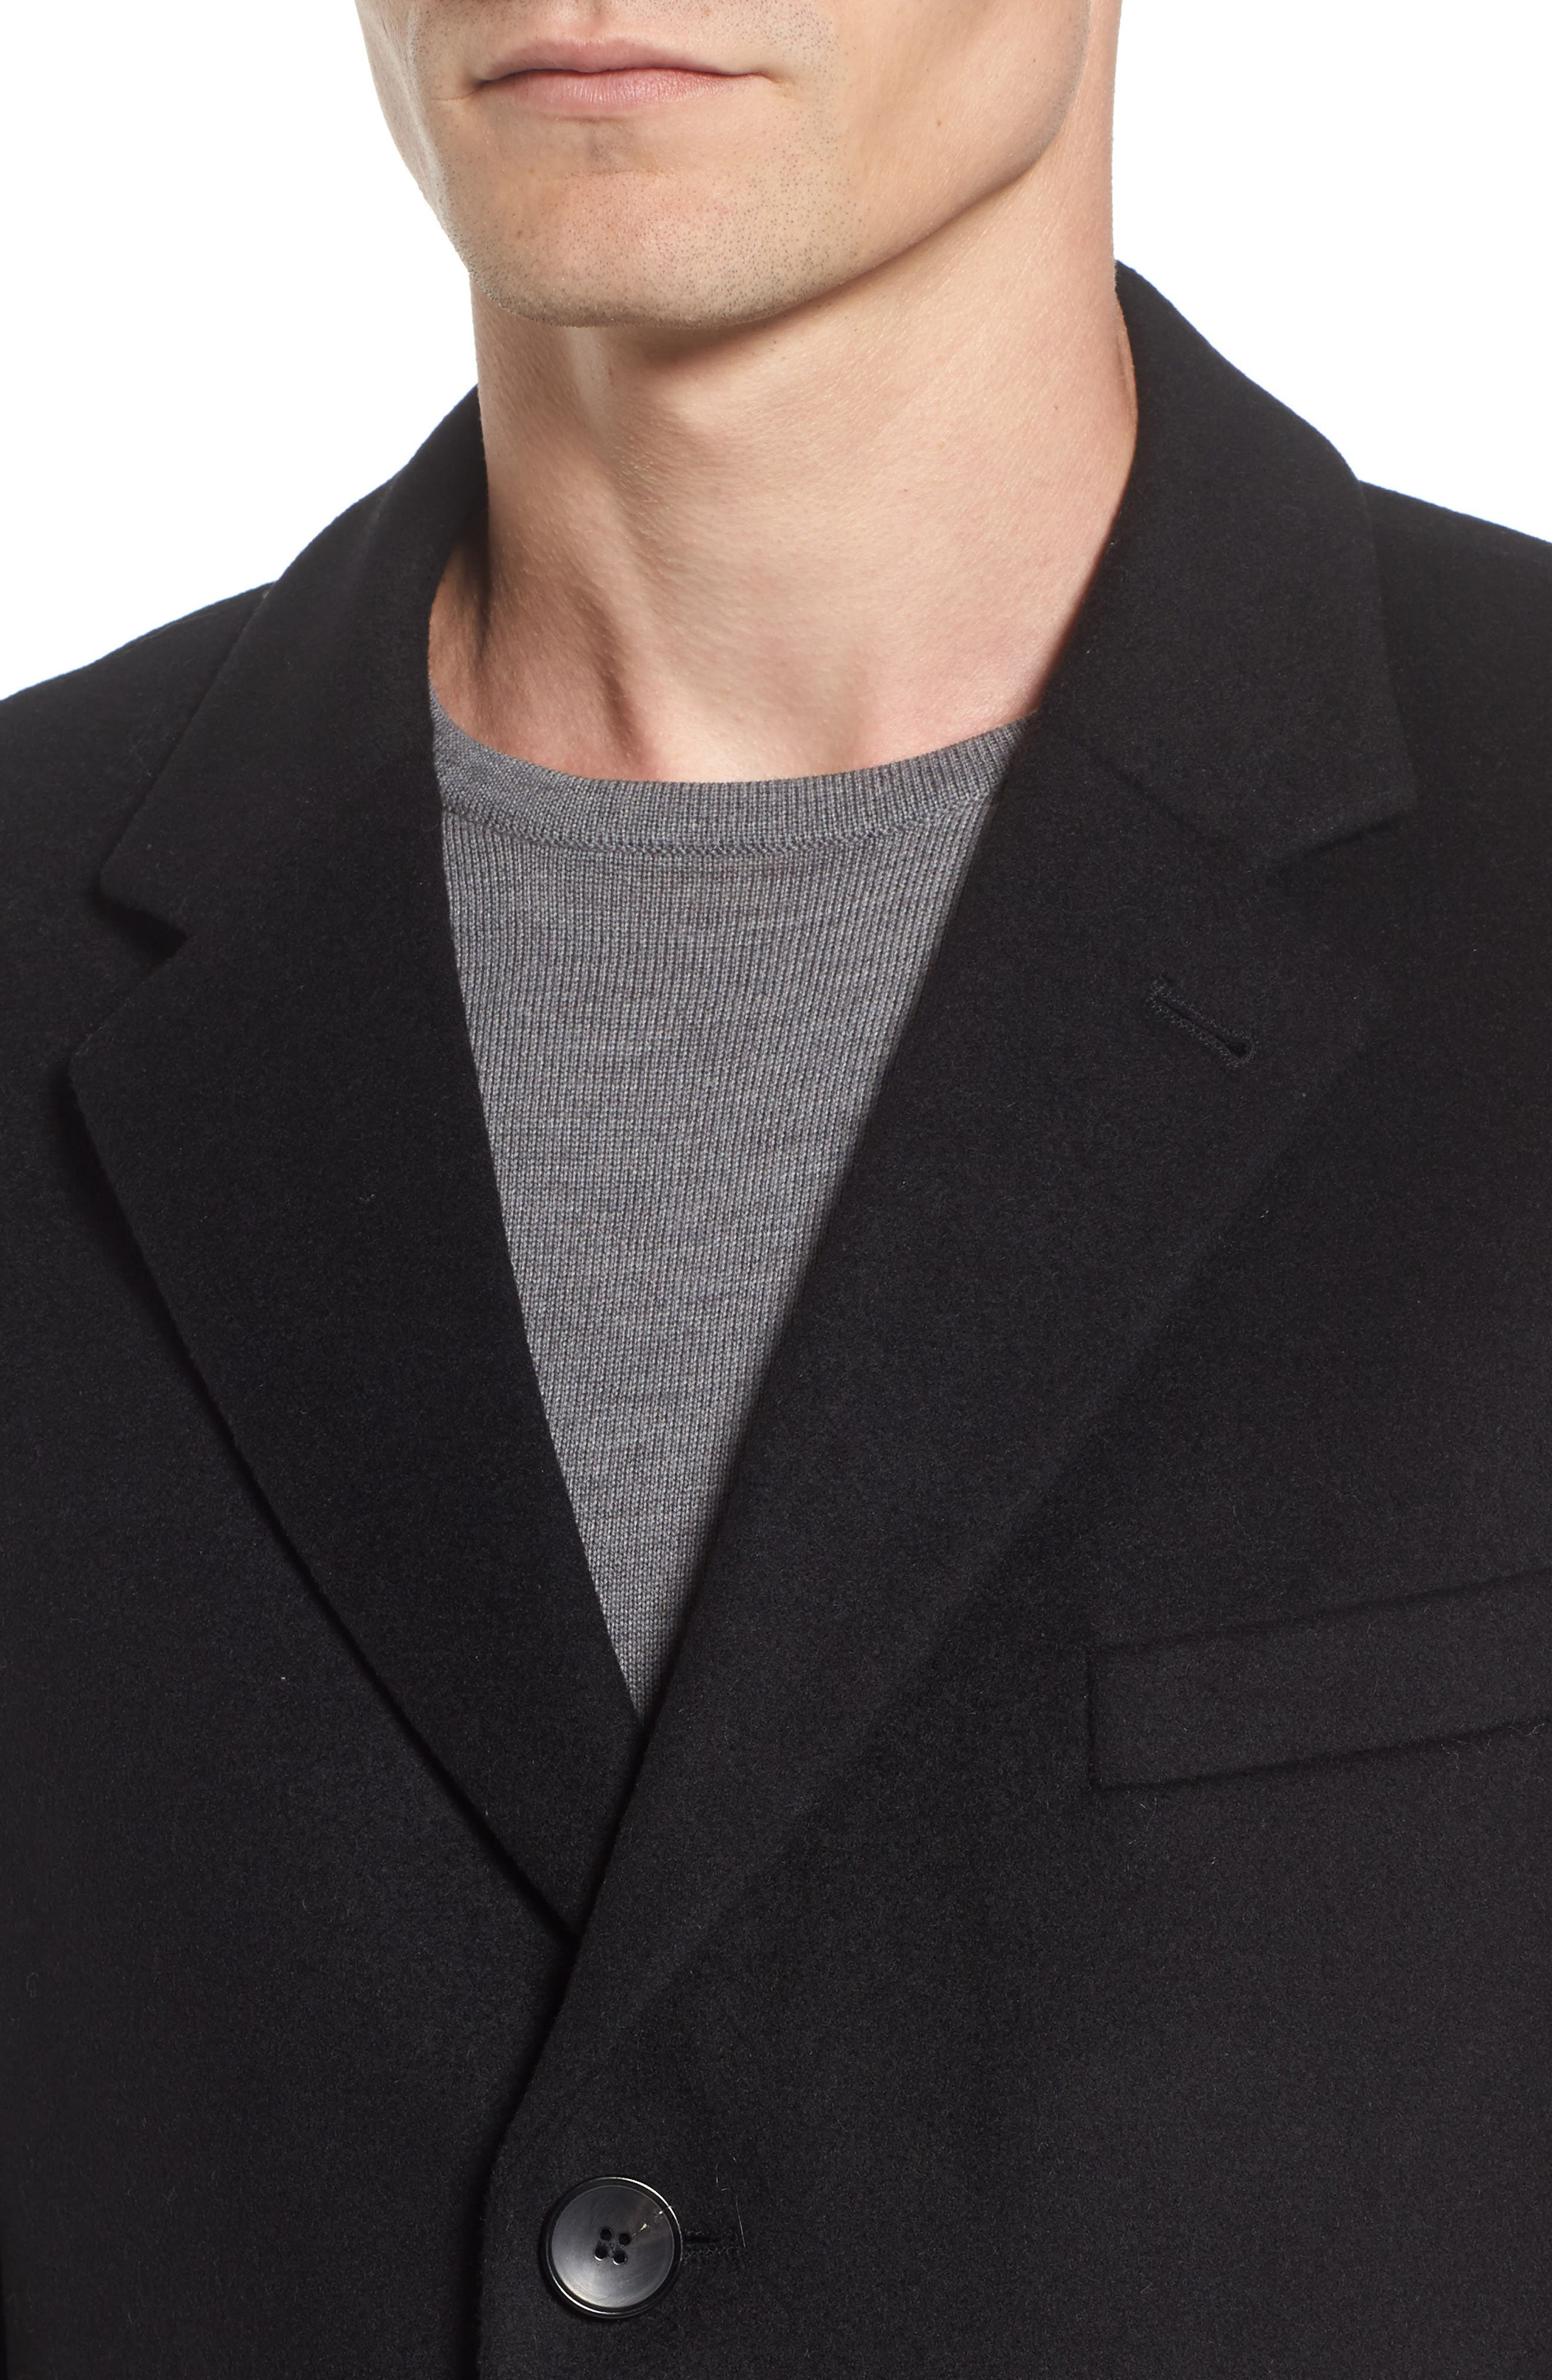 Nye Wool & Cashmere Topcoat,                             Alternate thumbnail 4, color,                             001